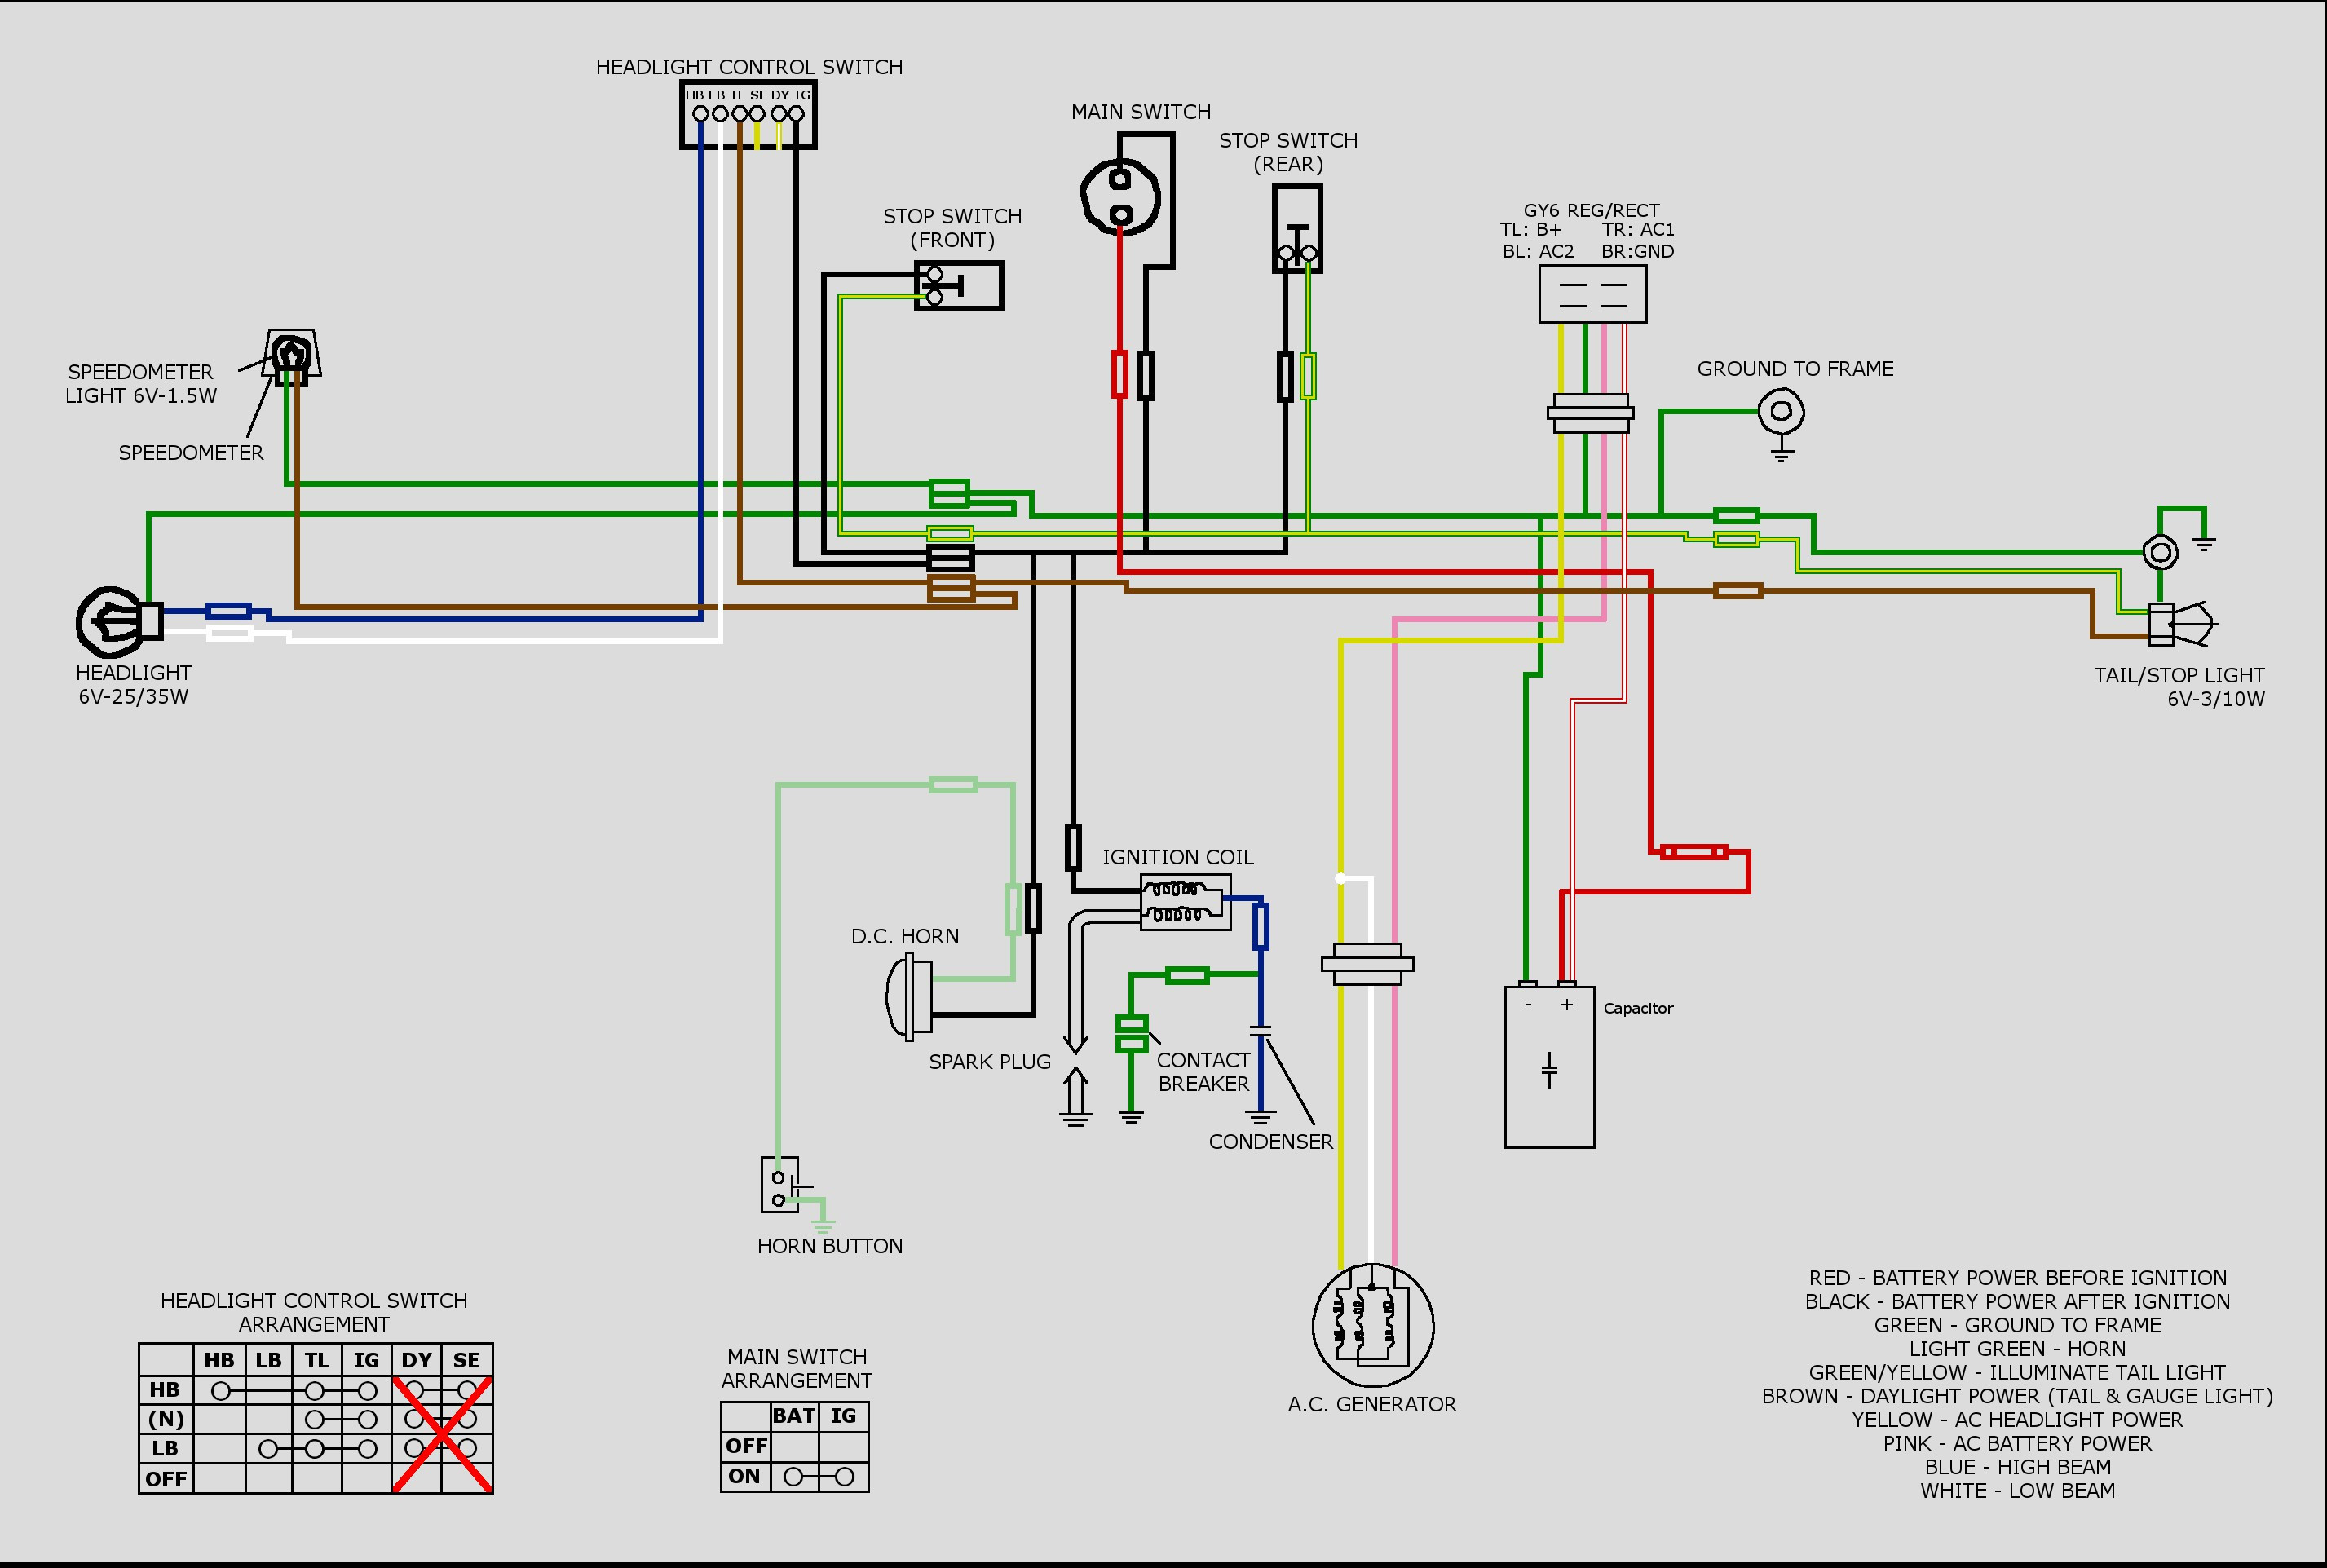 Inspirational Scooter Ignition Switch Wiring Diagram Arresting 3 - Scooter Ignition Switch Wiring Diagram